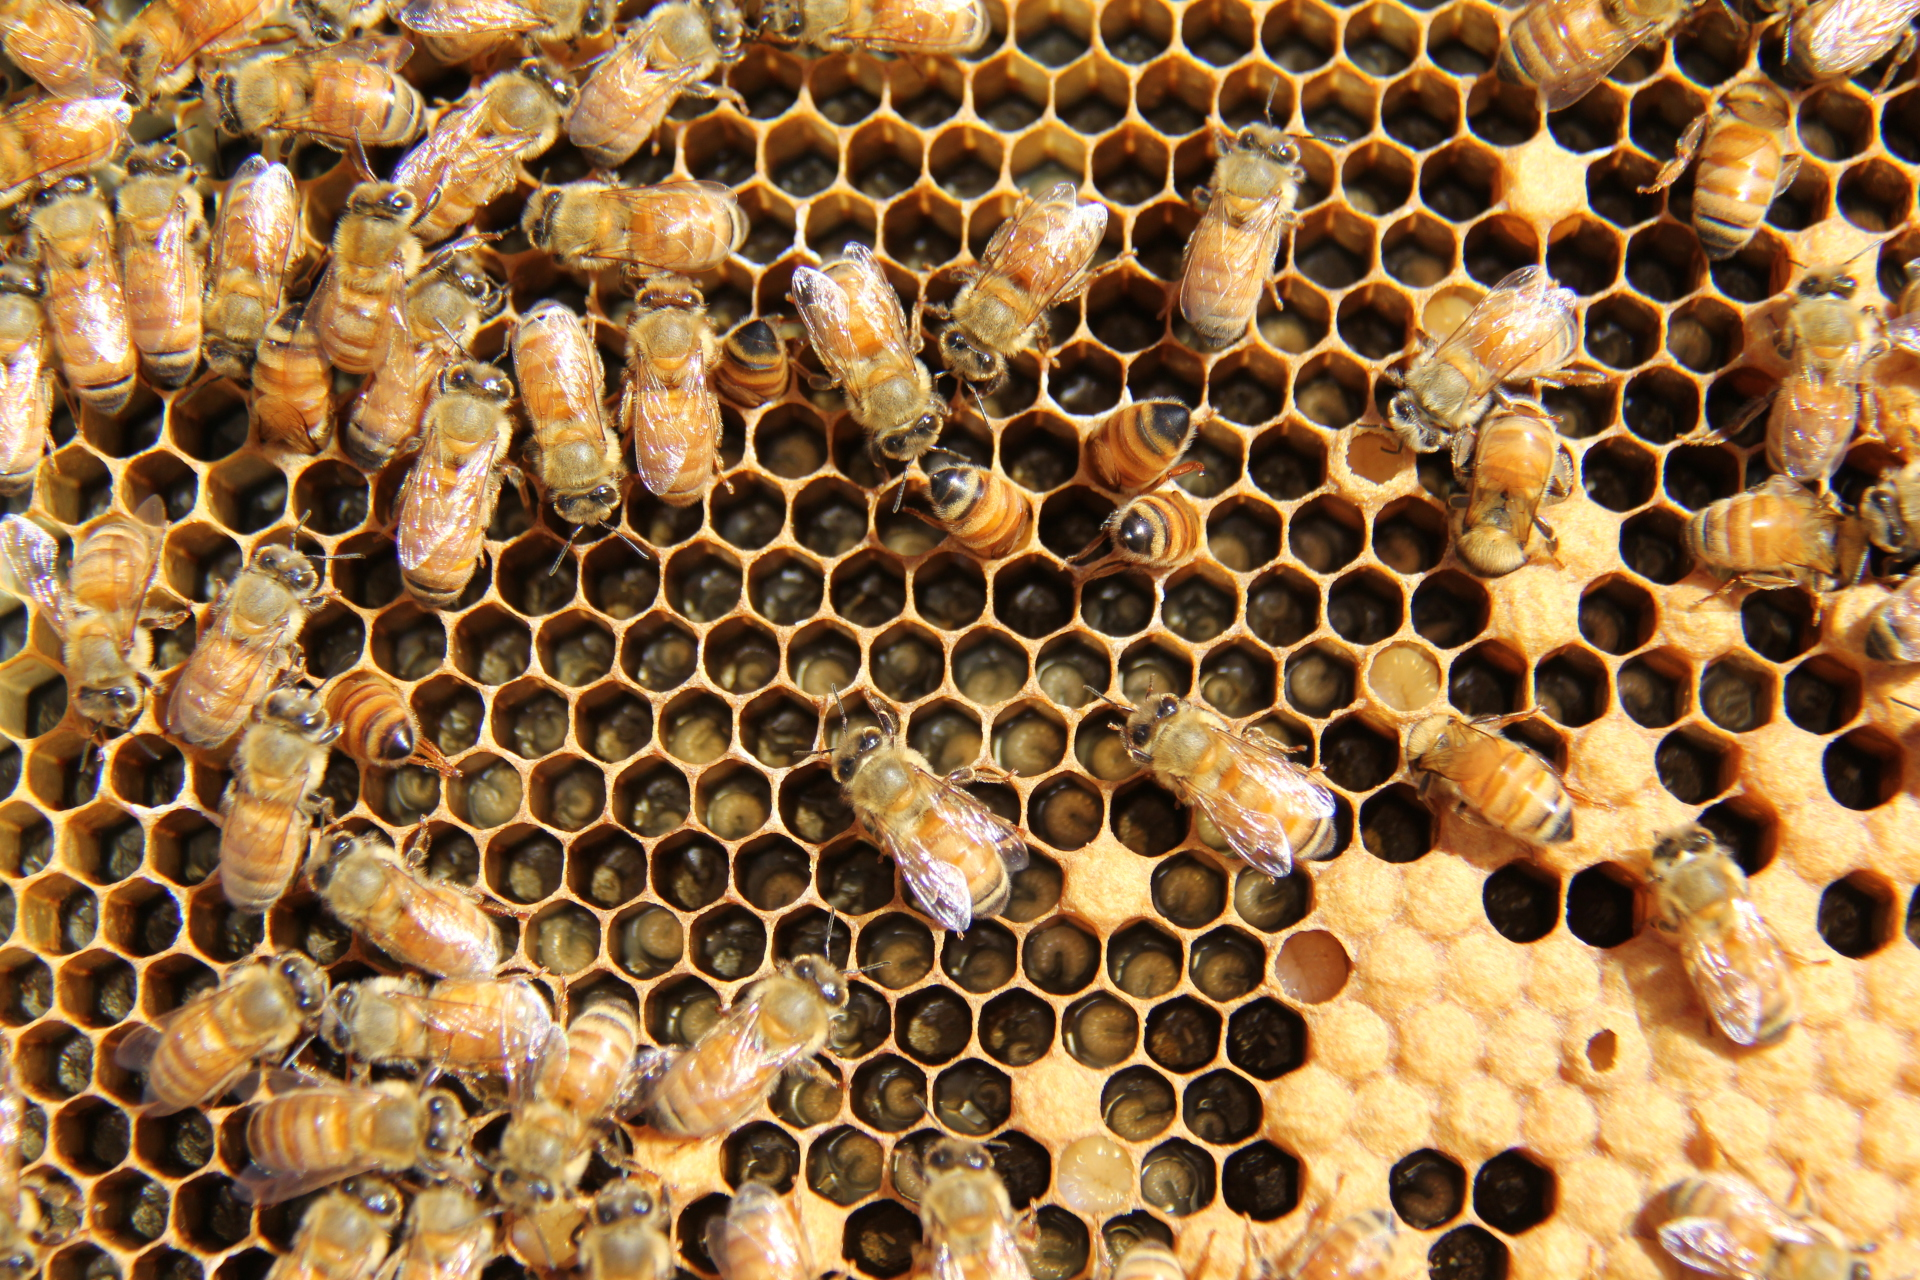 Different stages of brood in the bee hive